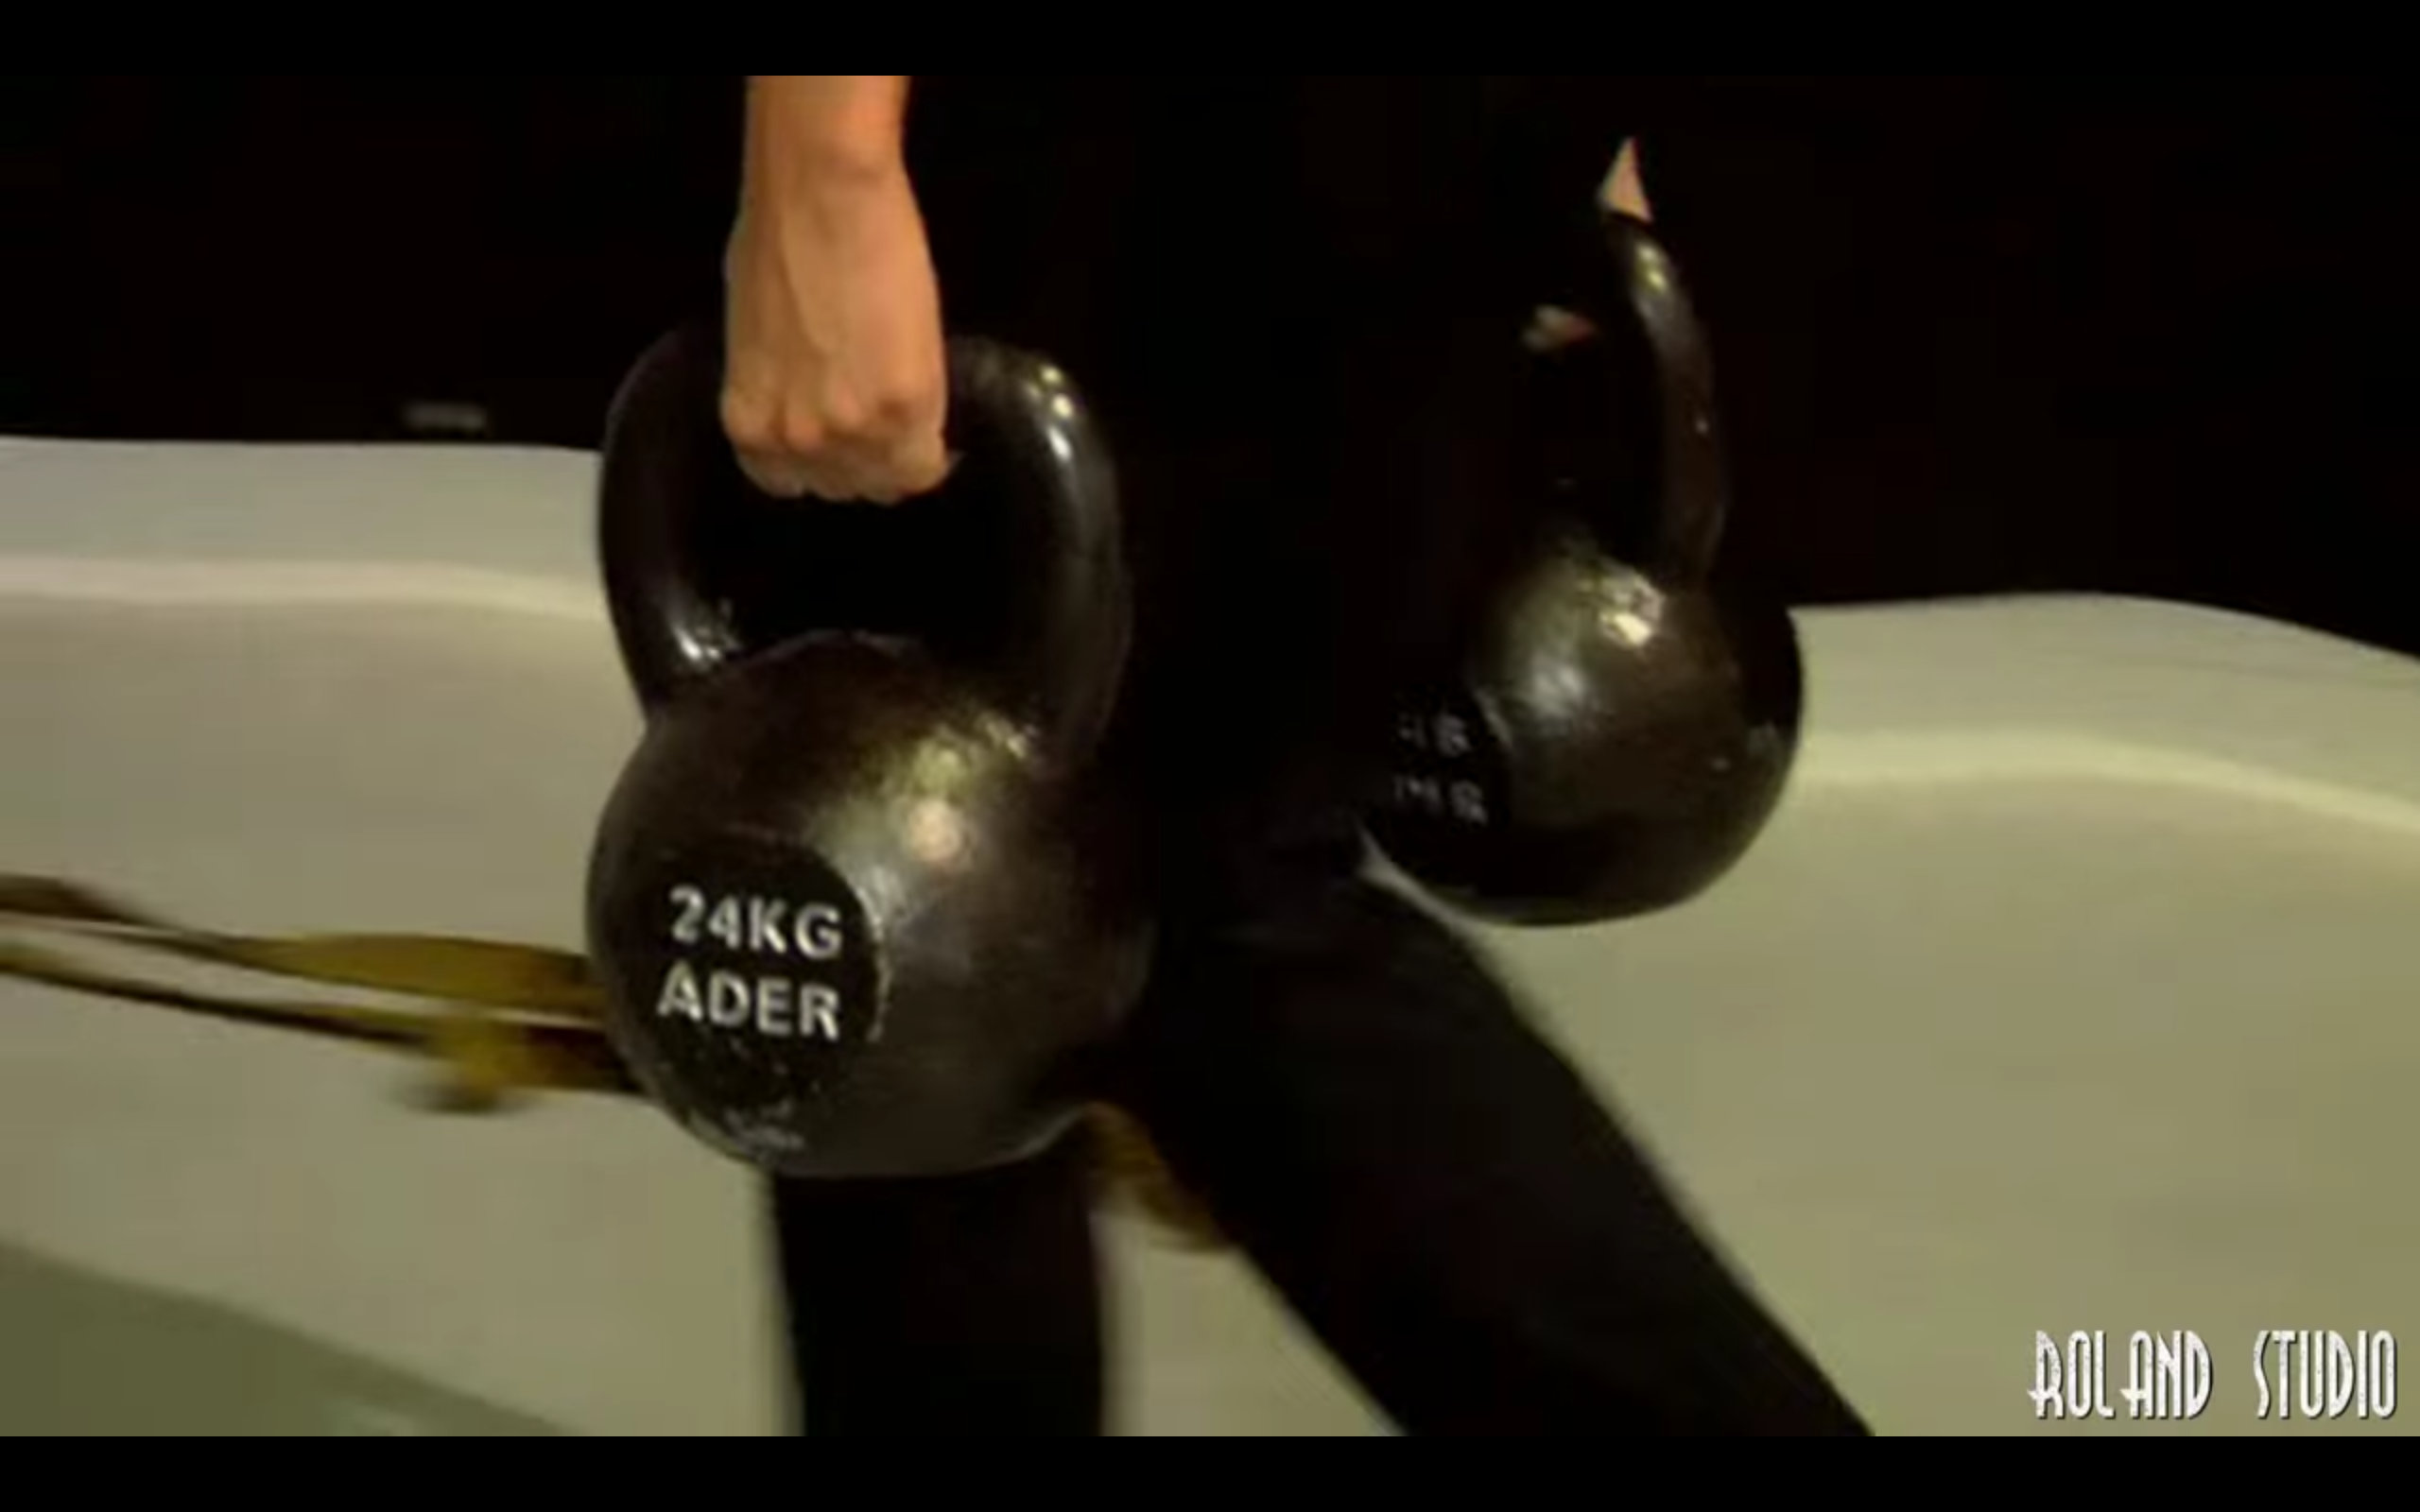 Vanessa farmer's carrying two 24kg (53 pound) kettlebells, from the Sucker Punch DVD Extraas